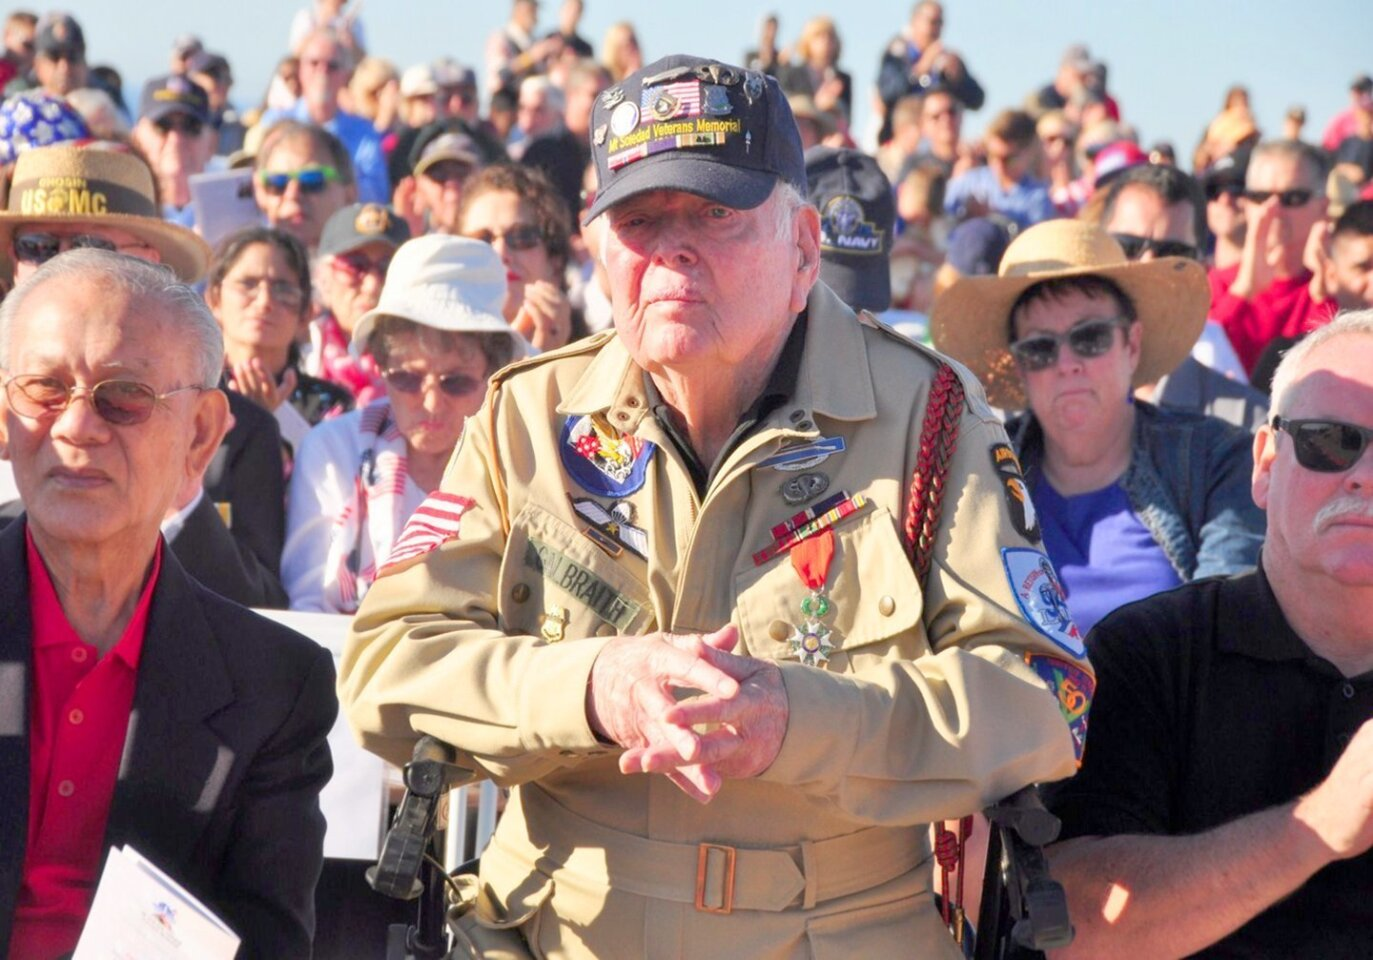 WWII Veteran Bill Galbraith of the 506th Parachute Infantry Regiment, 101st, was part of the invasion at Normandy, France. He attended the Veterans Day ceremony at Mt. Soledad National Veterans Memorial in La Jolla, Nov. 11, 2015.